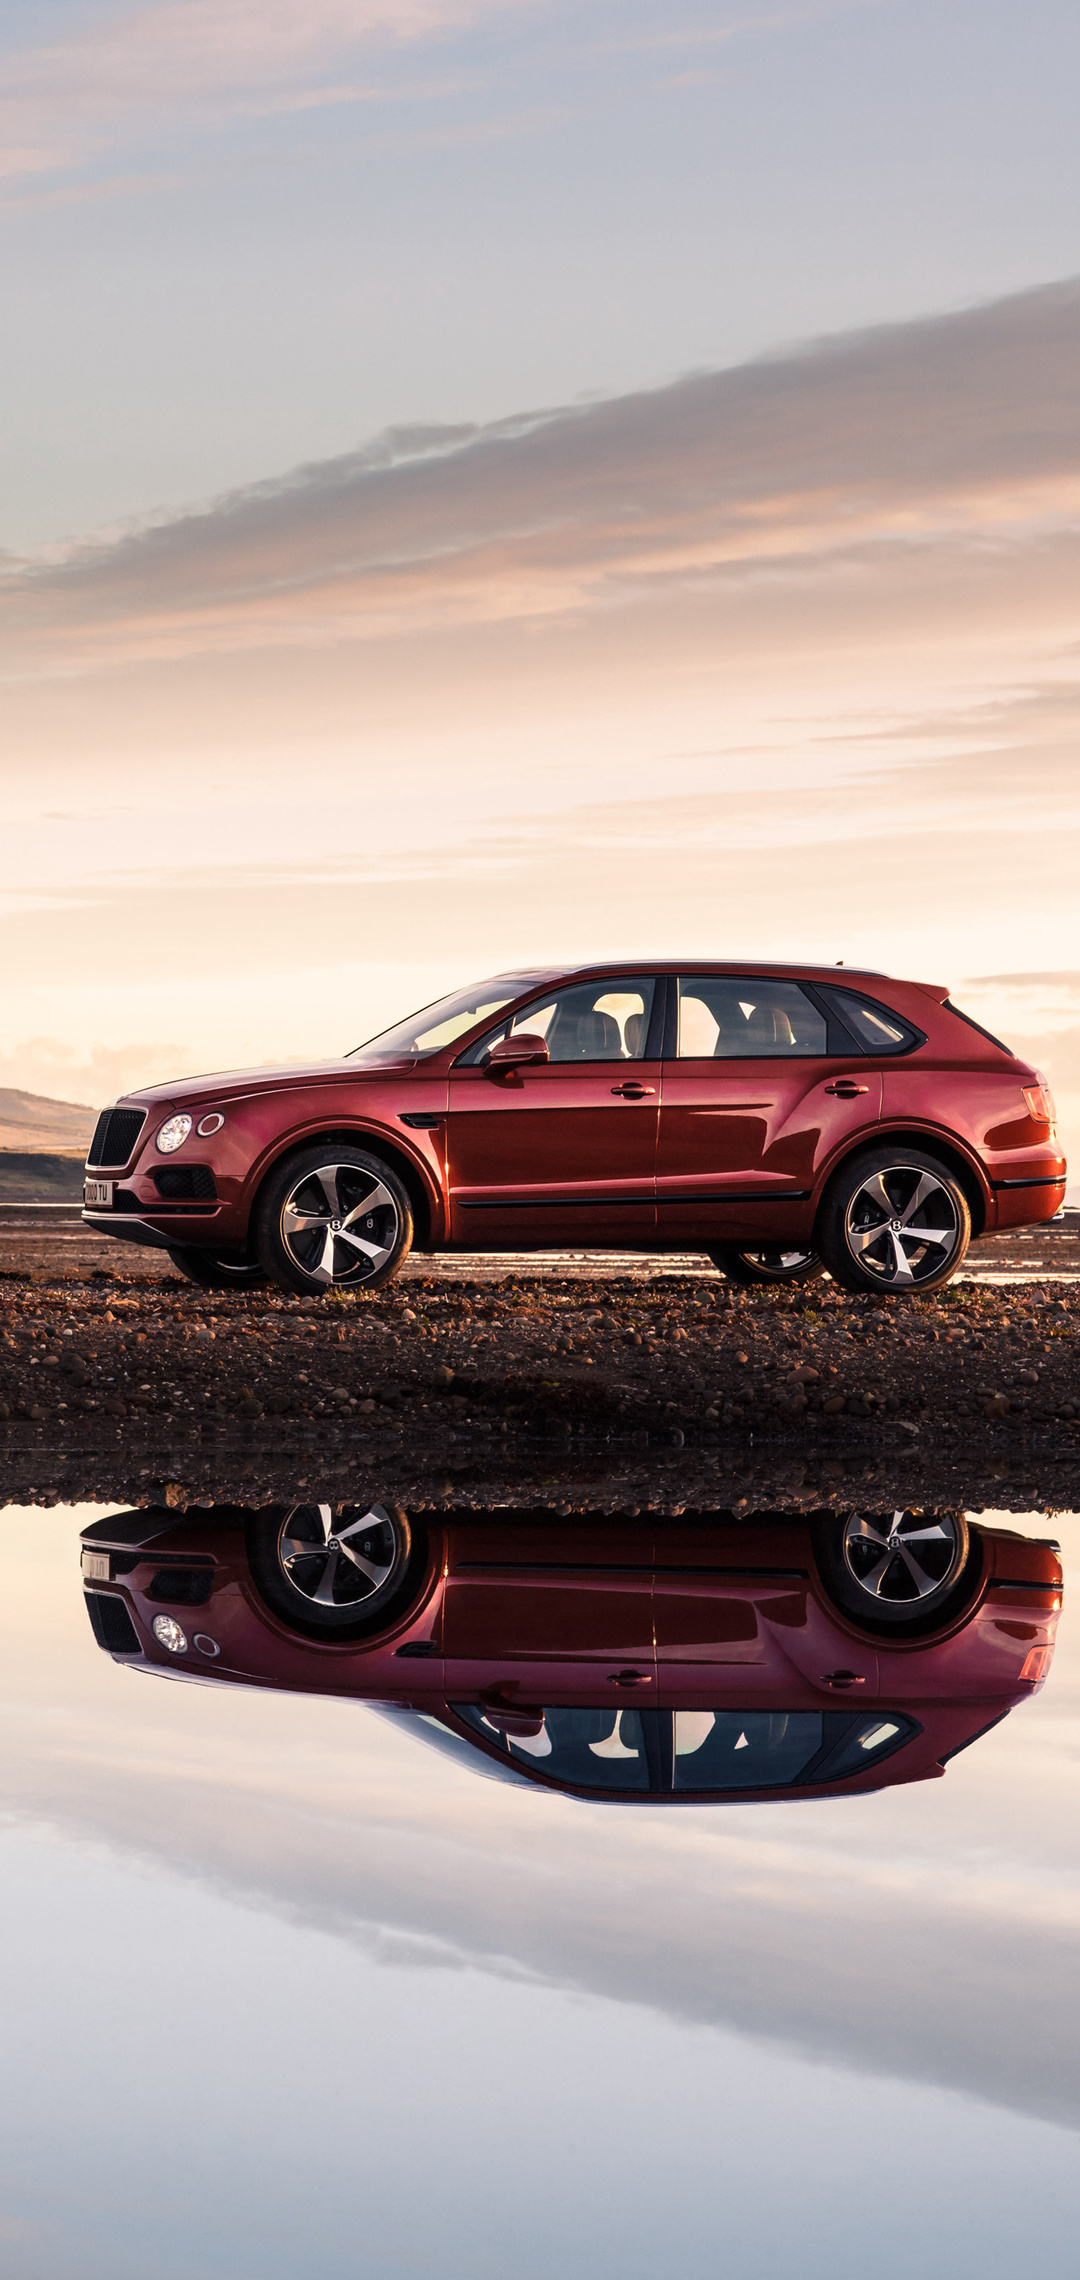 bentley-bentayga-v8-side-view-2018-wz.jpg